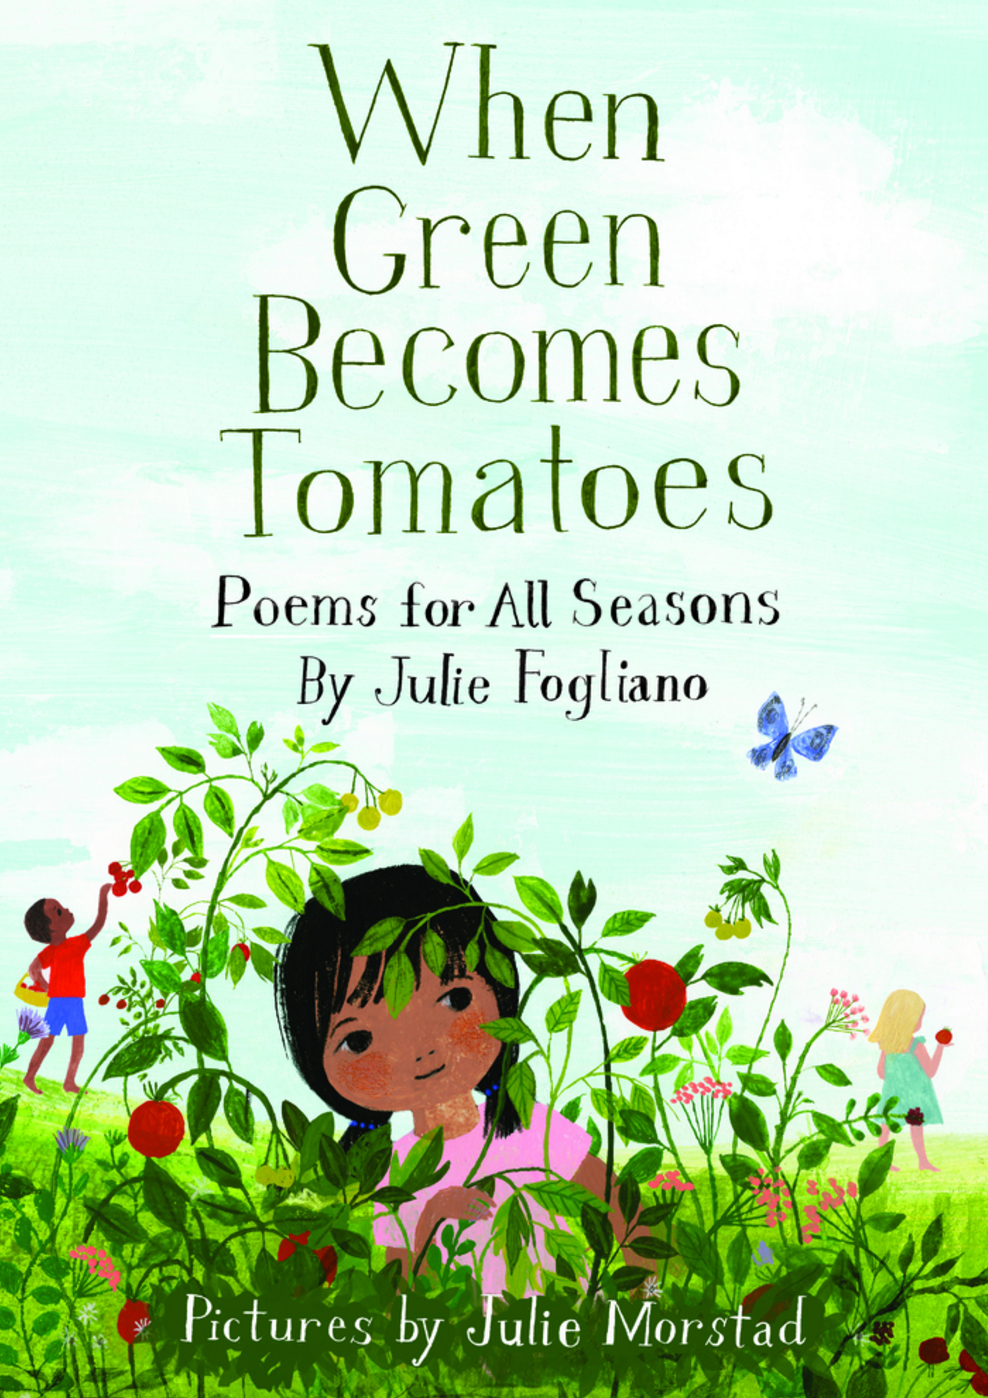 When Green Becomes Tomatoes, by Julie Fogliano; illustrated by Julie Morstad